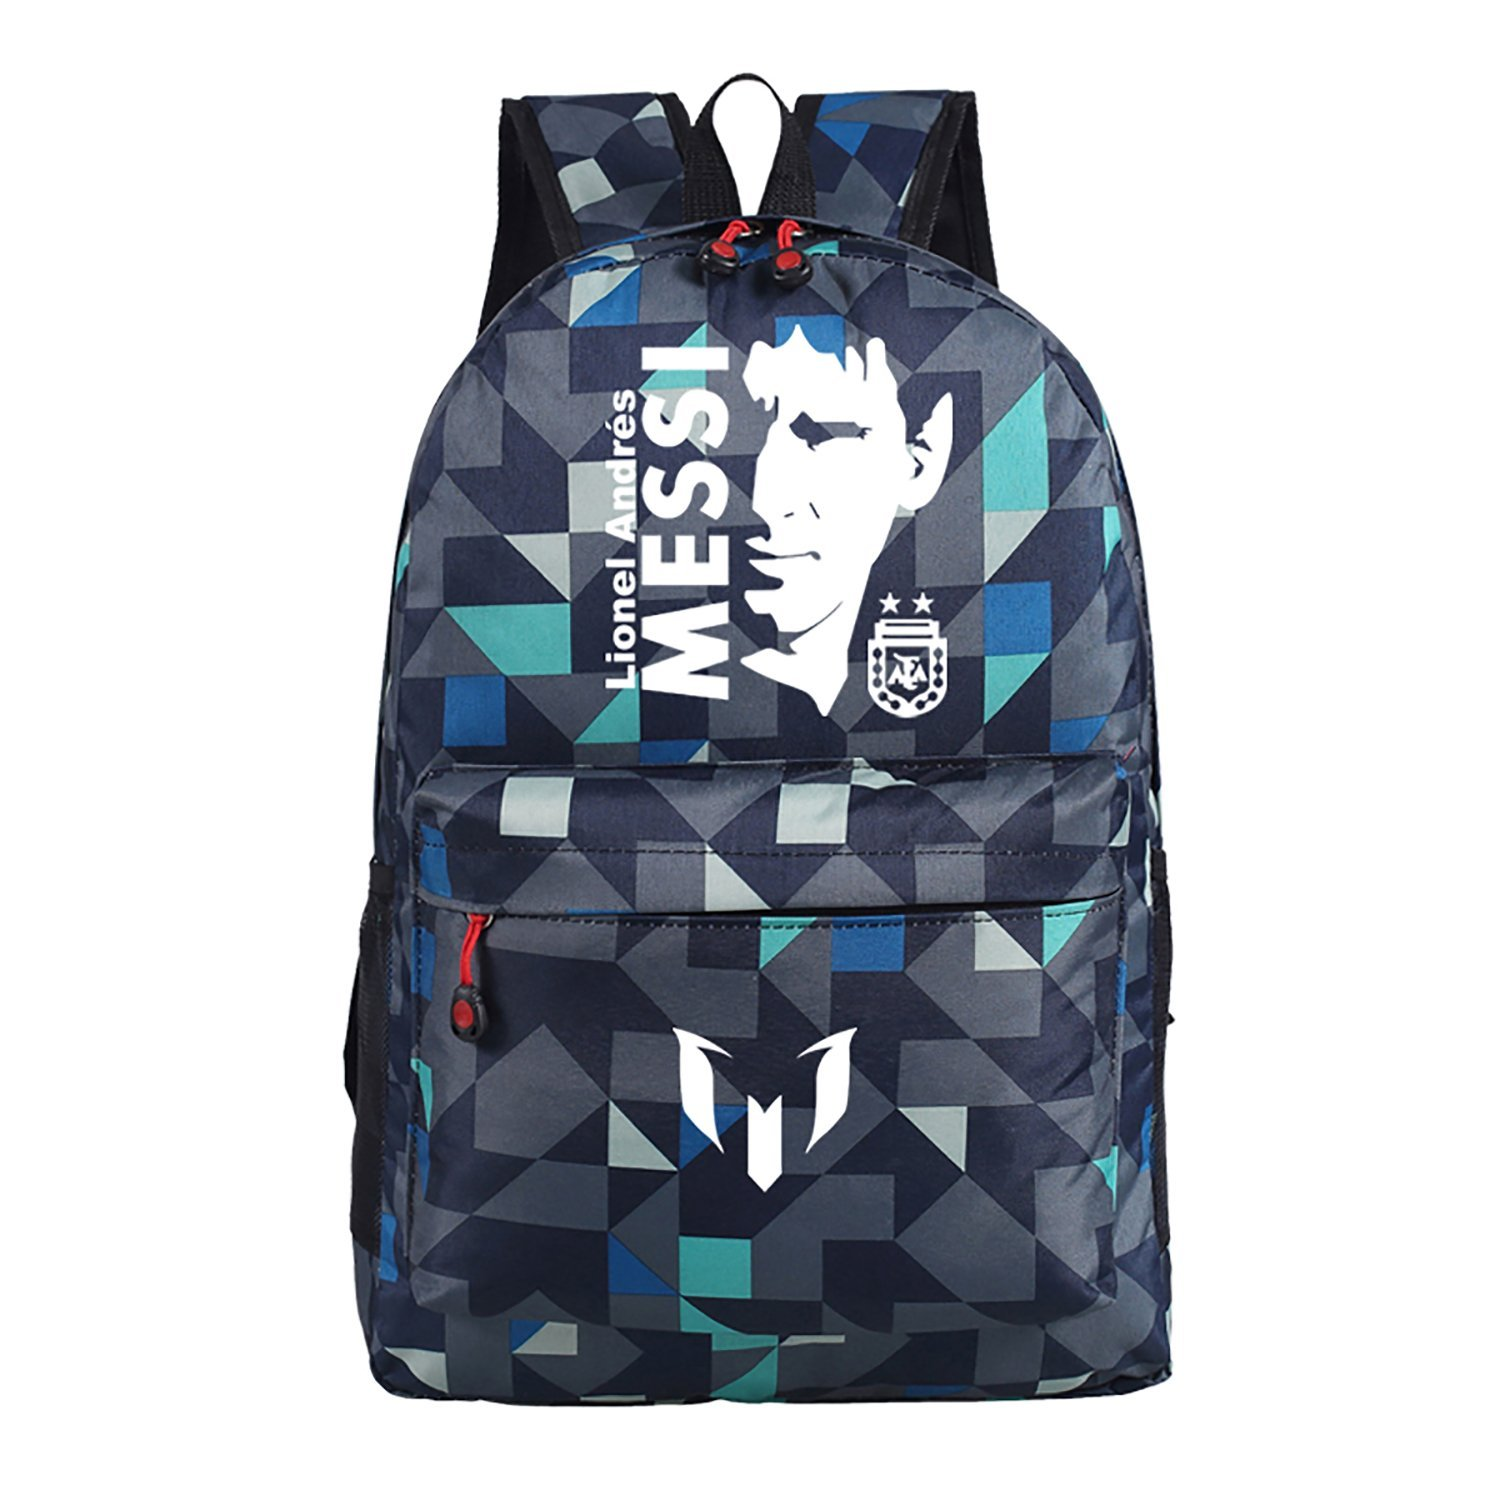 35e76ccc6f Barcelona Lionel Messi Backpack Jersey Football Bags for Kids Large School  Bags for Boys Soccer World (Lattice Blue)  Amazon.ca  Luggage   Bags